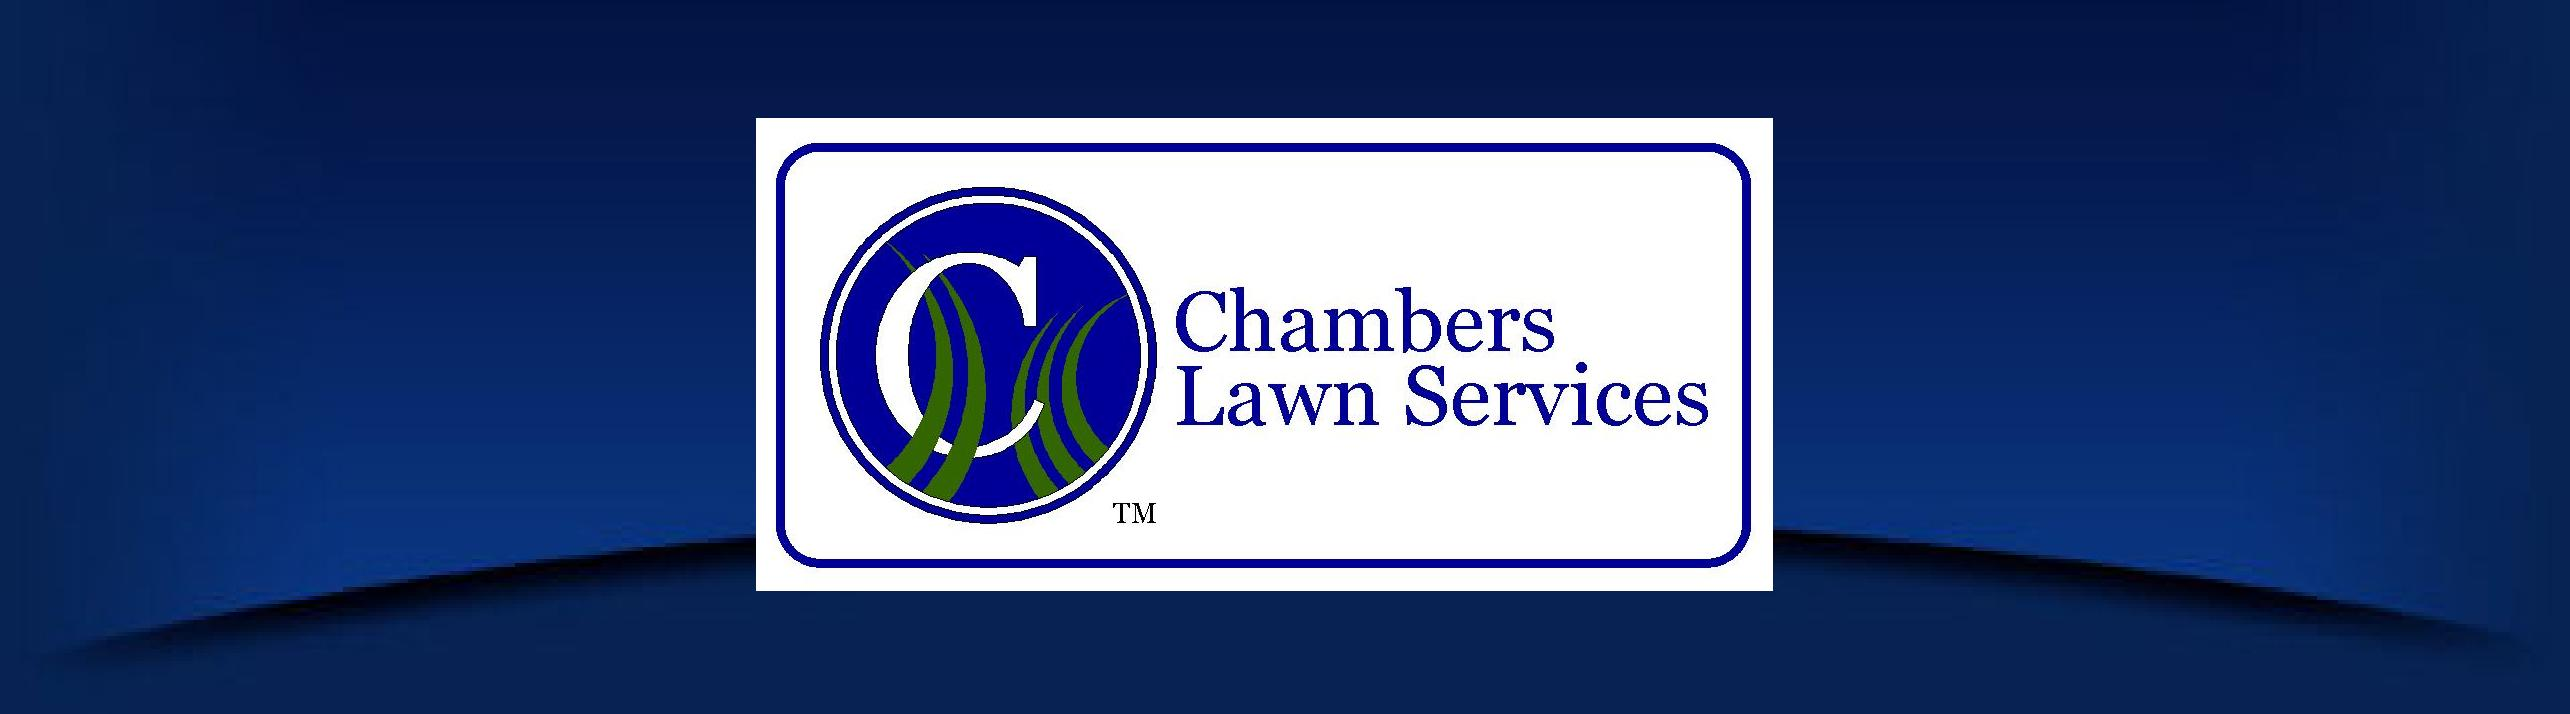 Chambers Lawn Services Logo